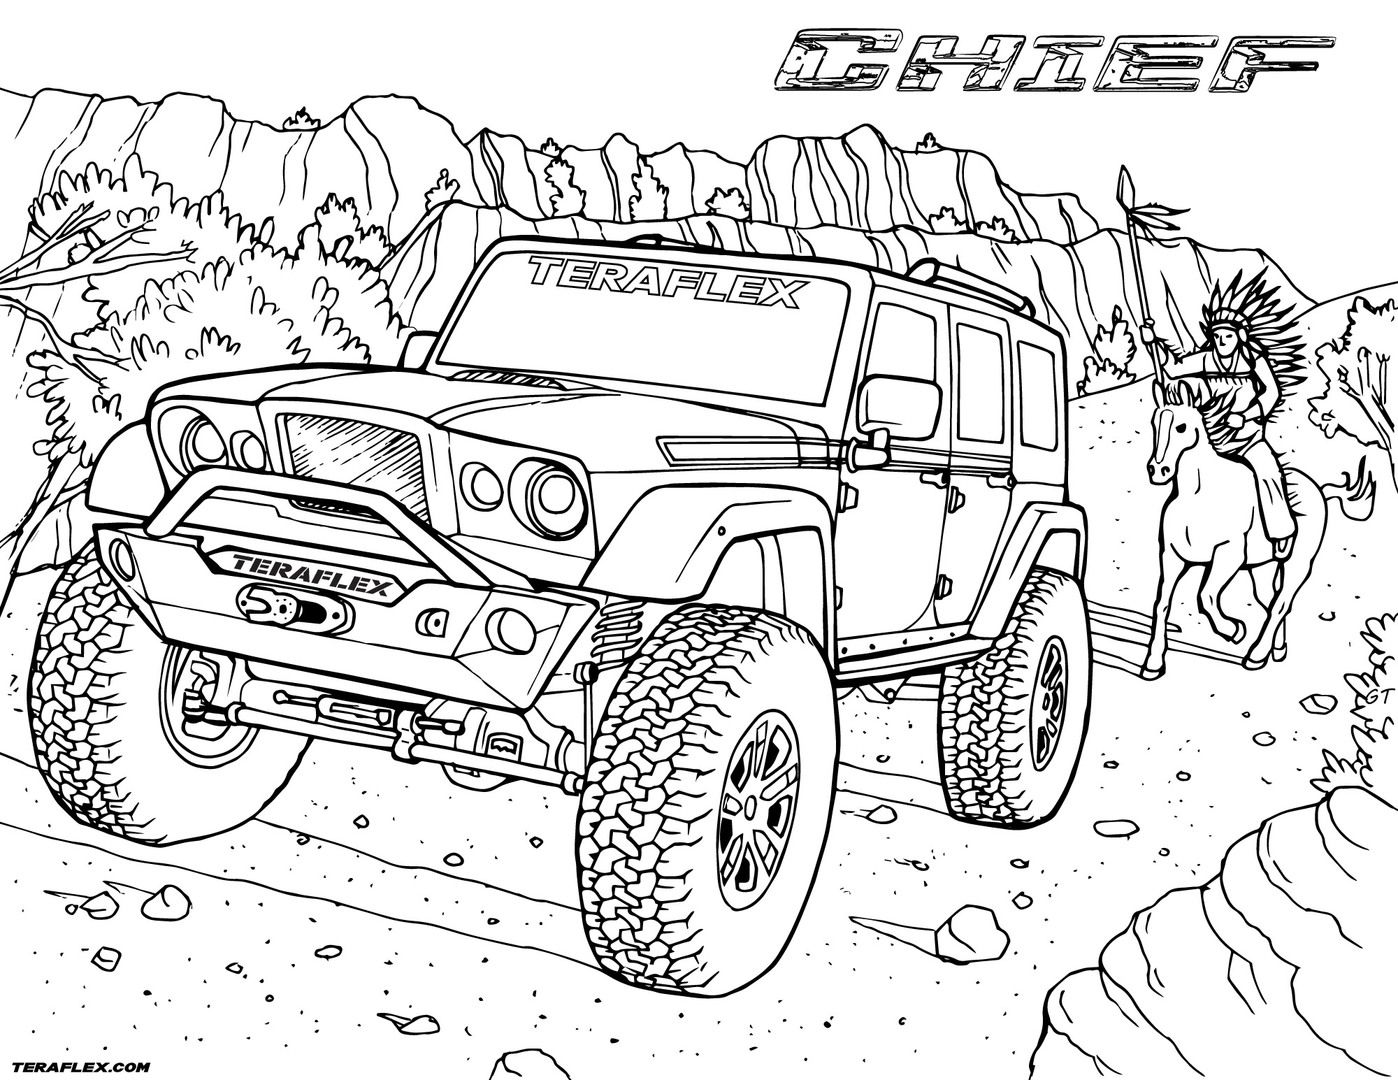 Gallery Teraflex Jeep Coloring Pages Teraflex Truck Coloring Pages Coloring Pages Cars Coloring Pages